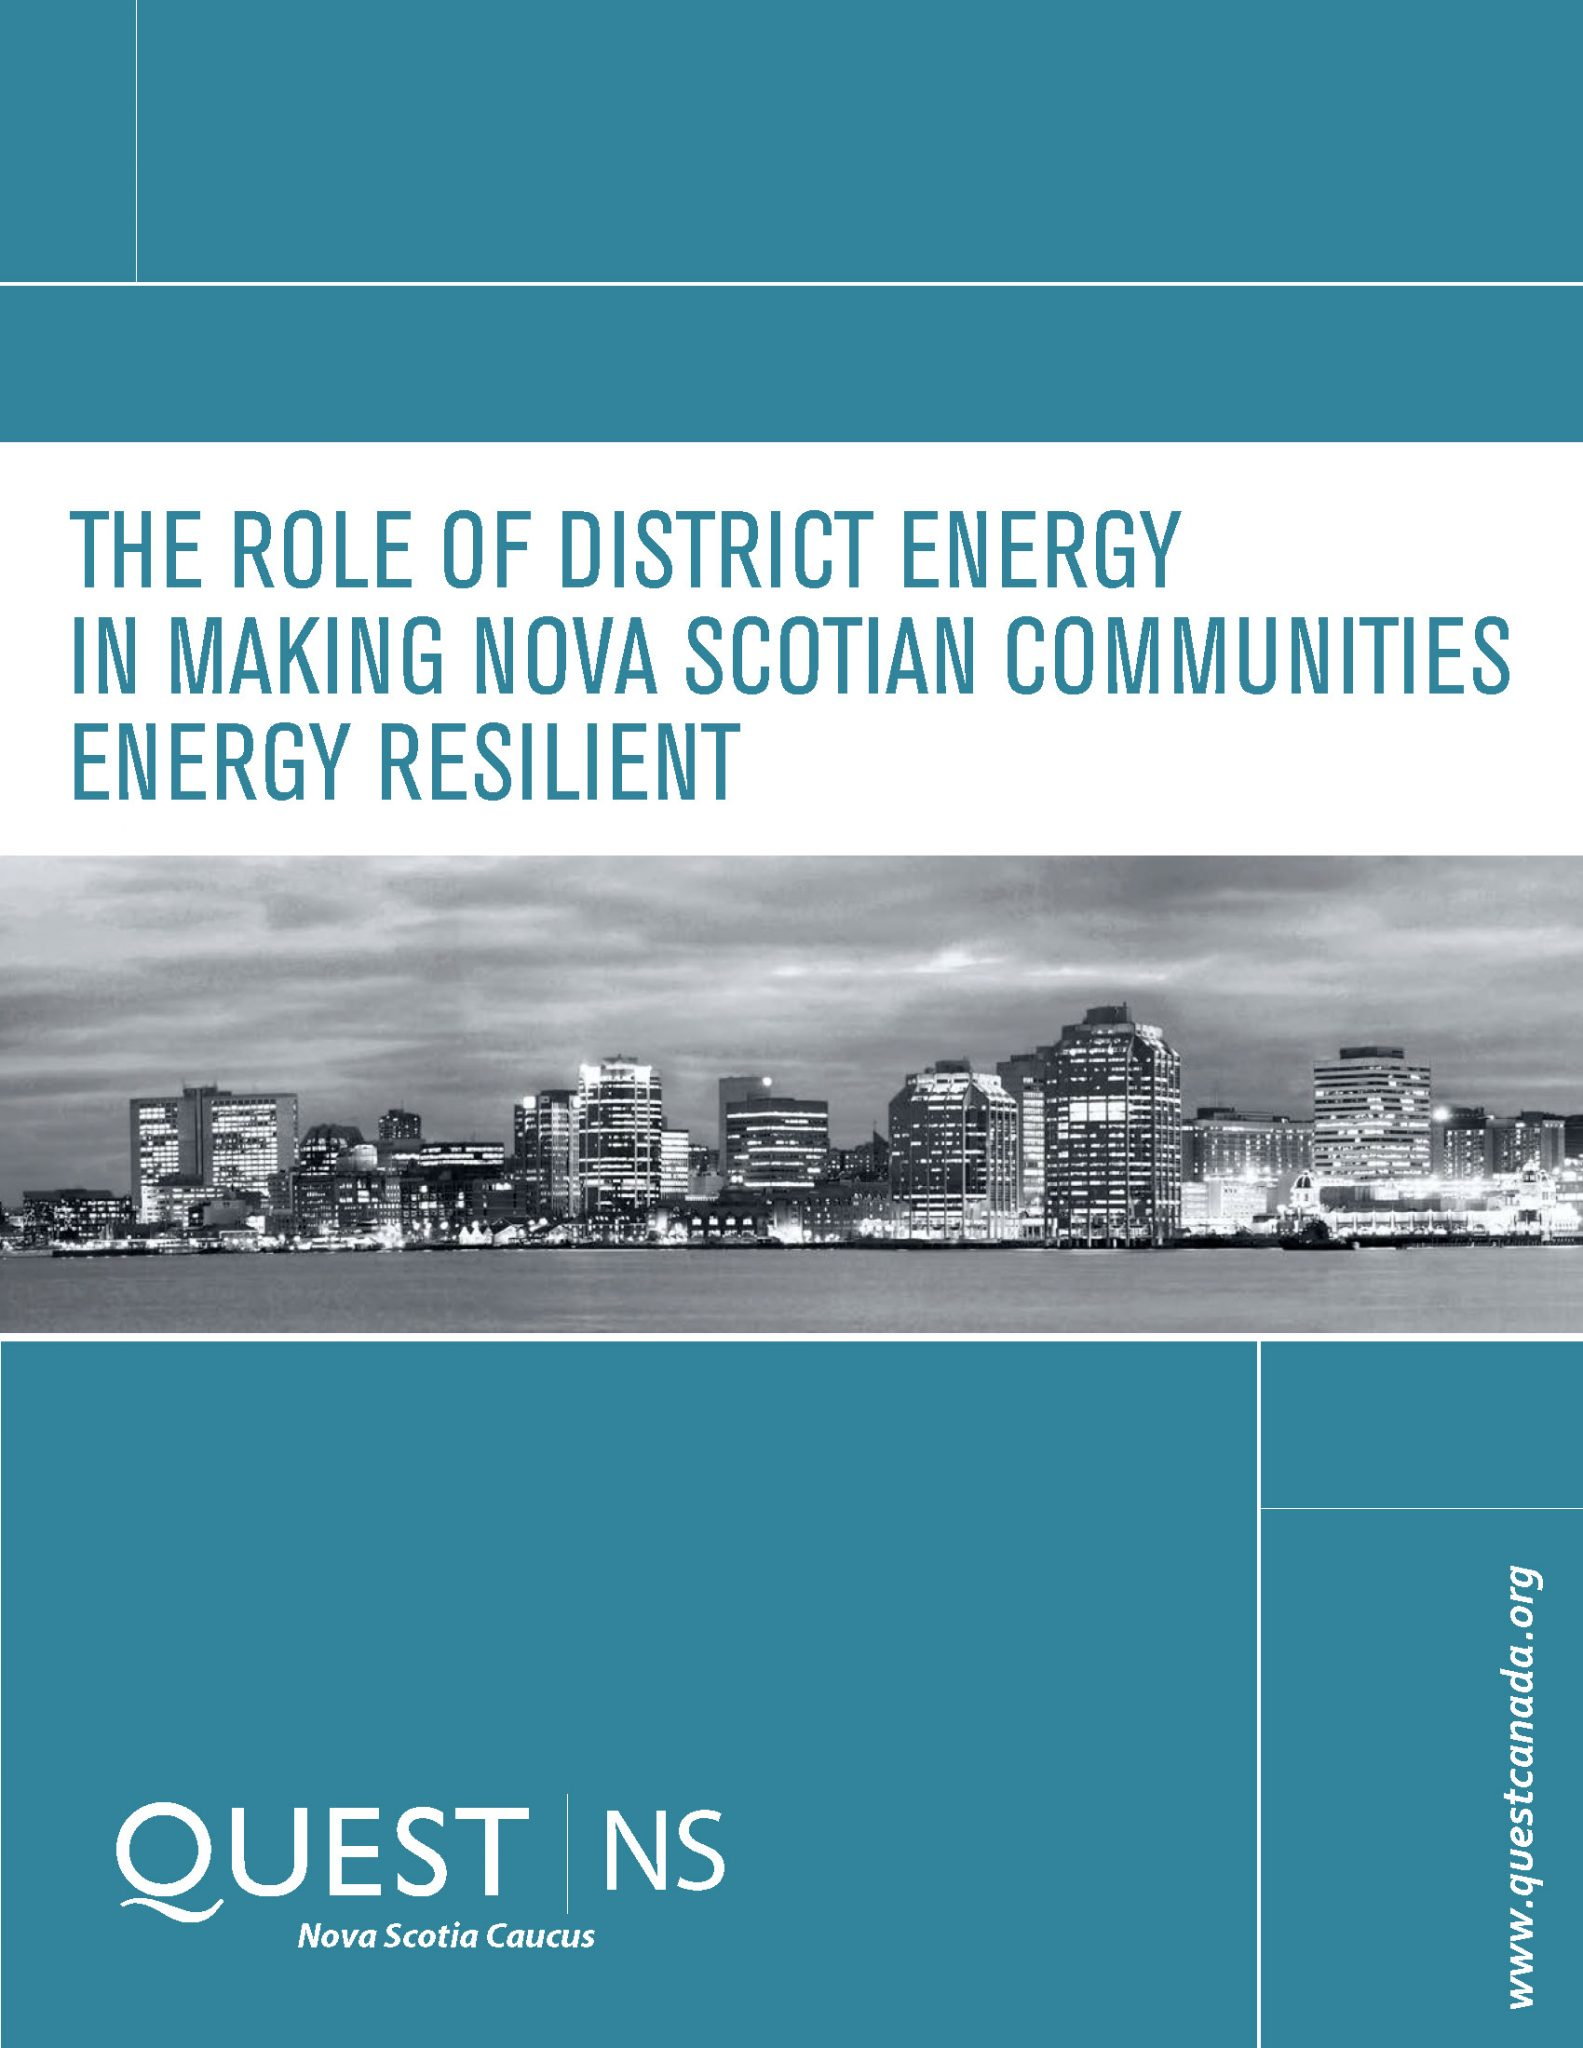 The Role of District Energy in Making Nova Scotian Communities Energy Resilient